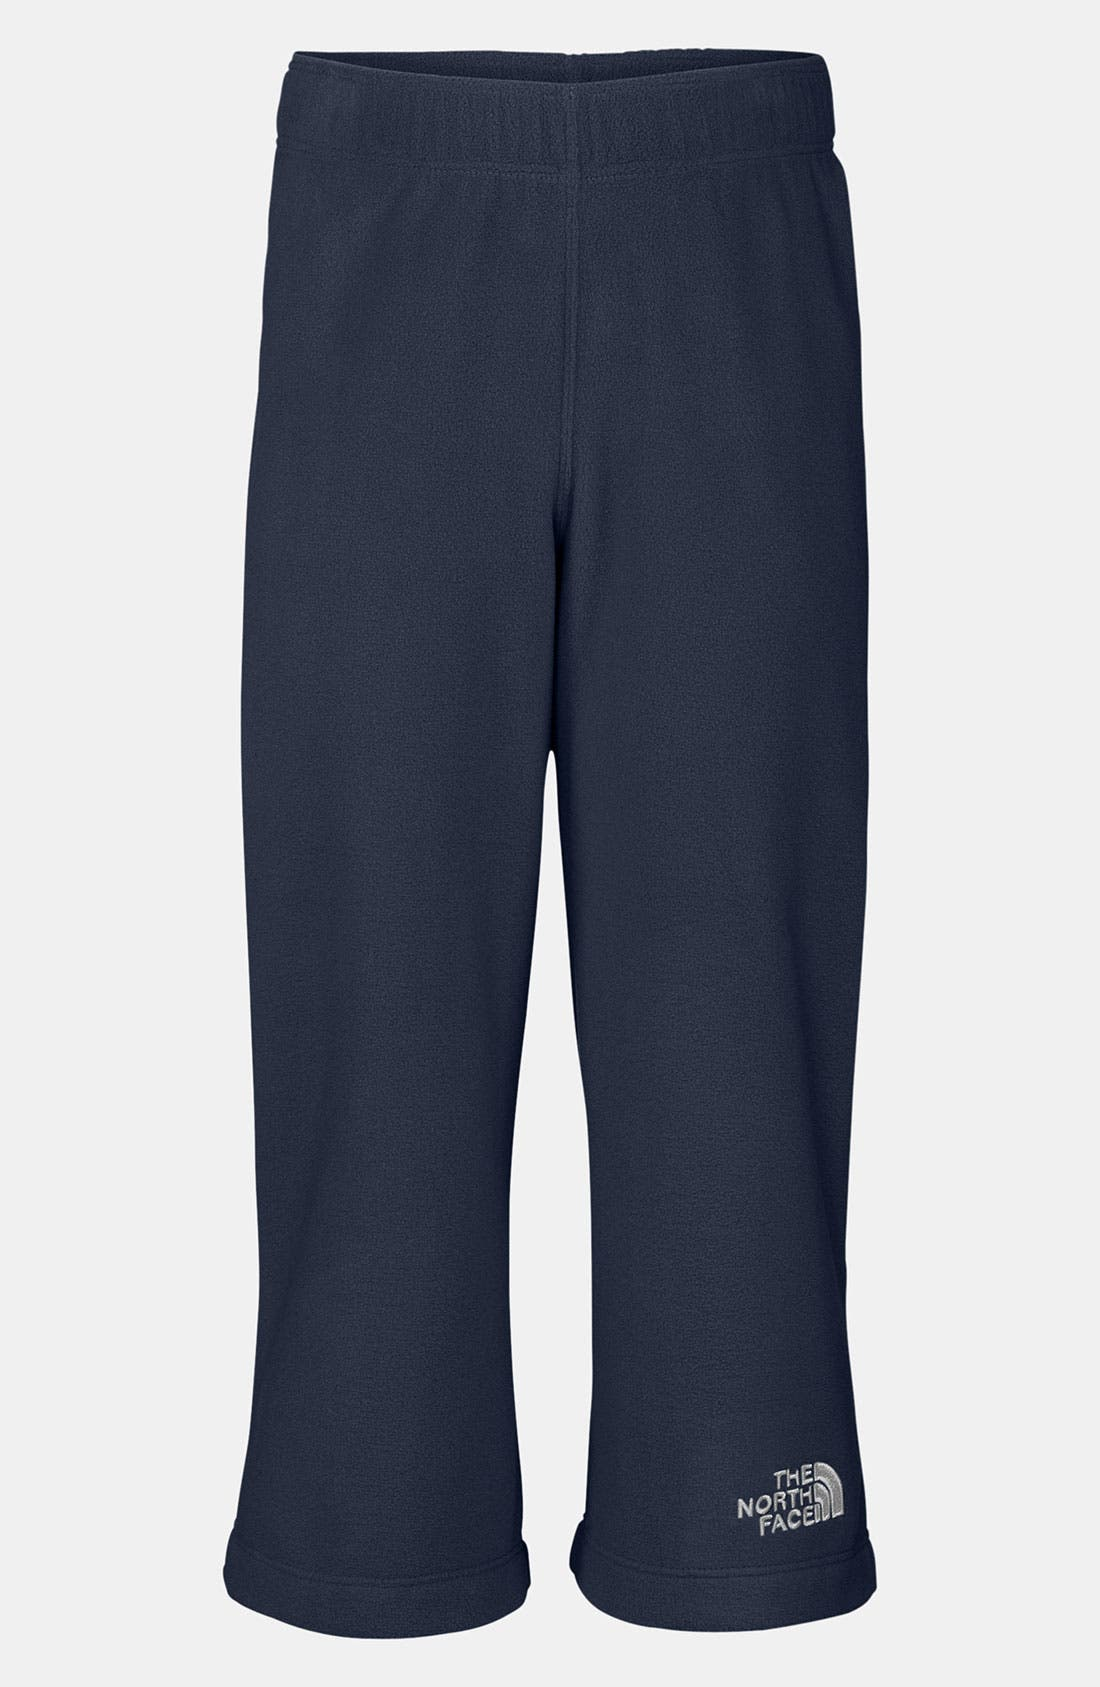 Alternate Image 1 Selected - The North Face 'Glacier' Pants (Toddler)